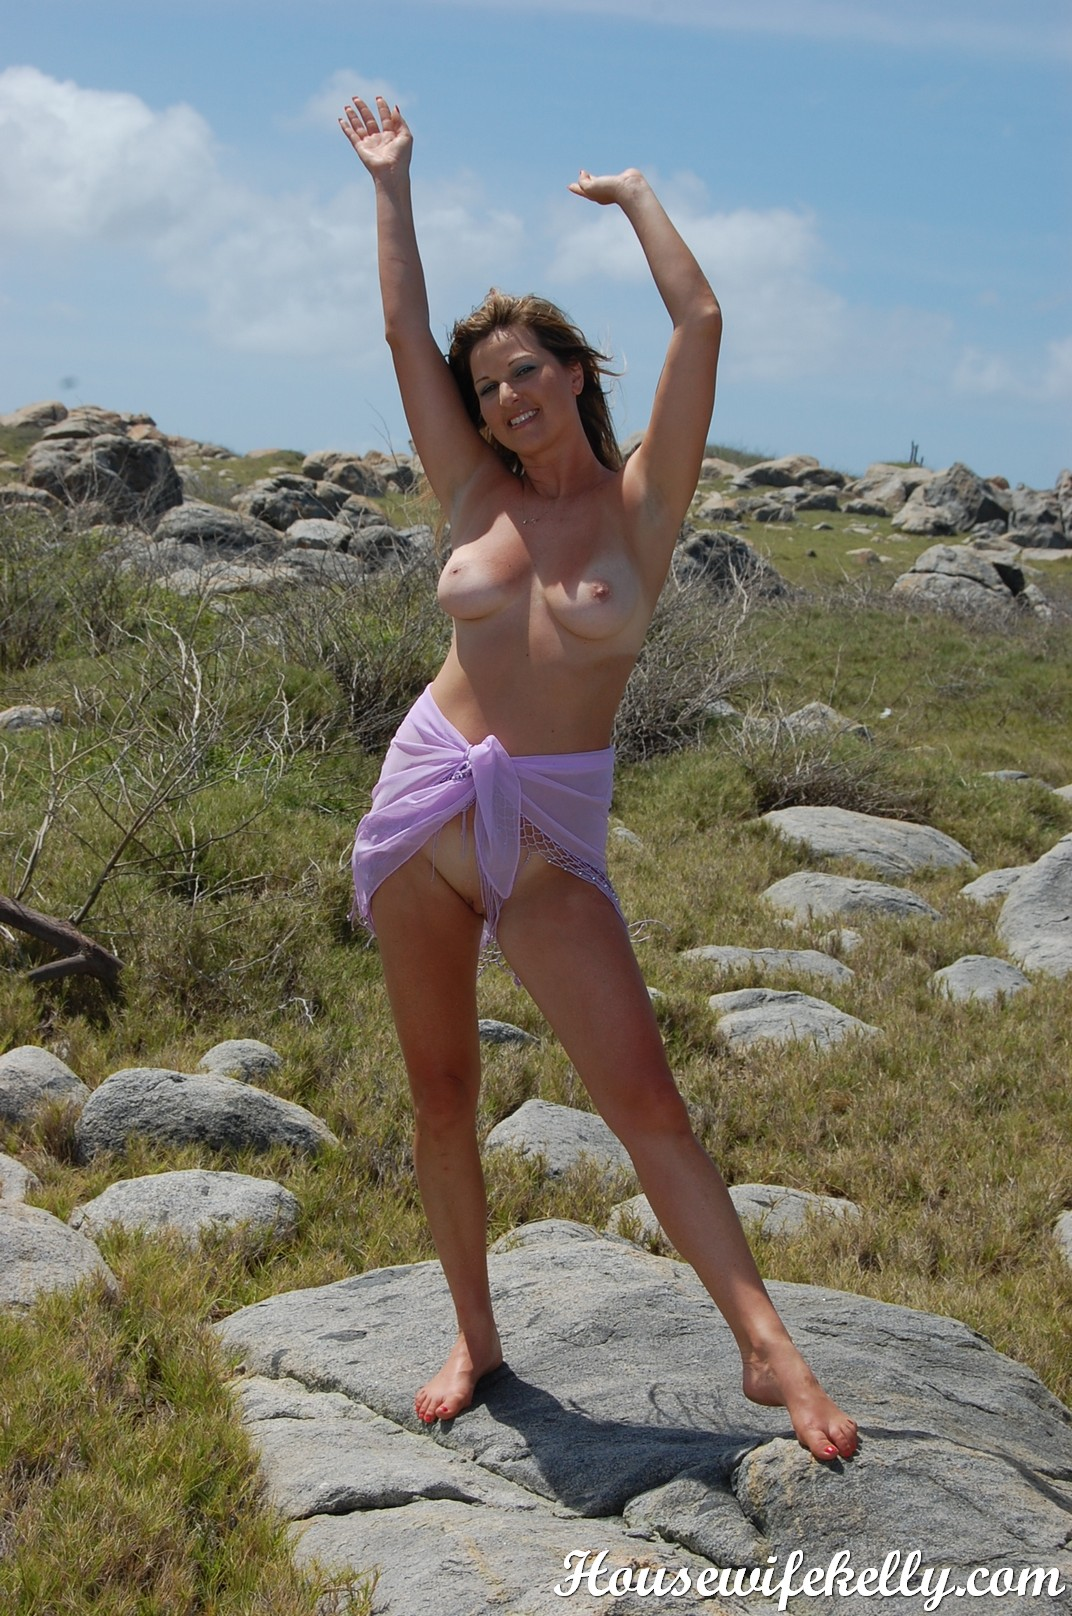 Housewife kelly nude beach